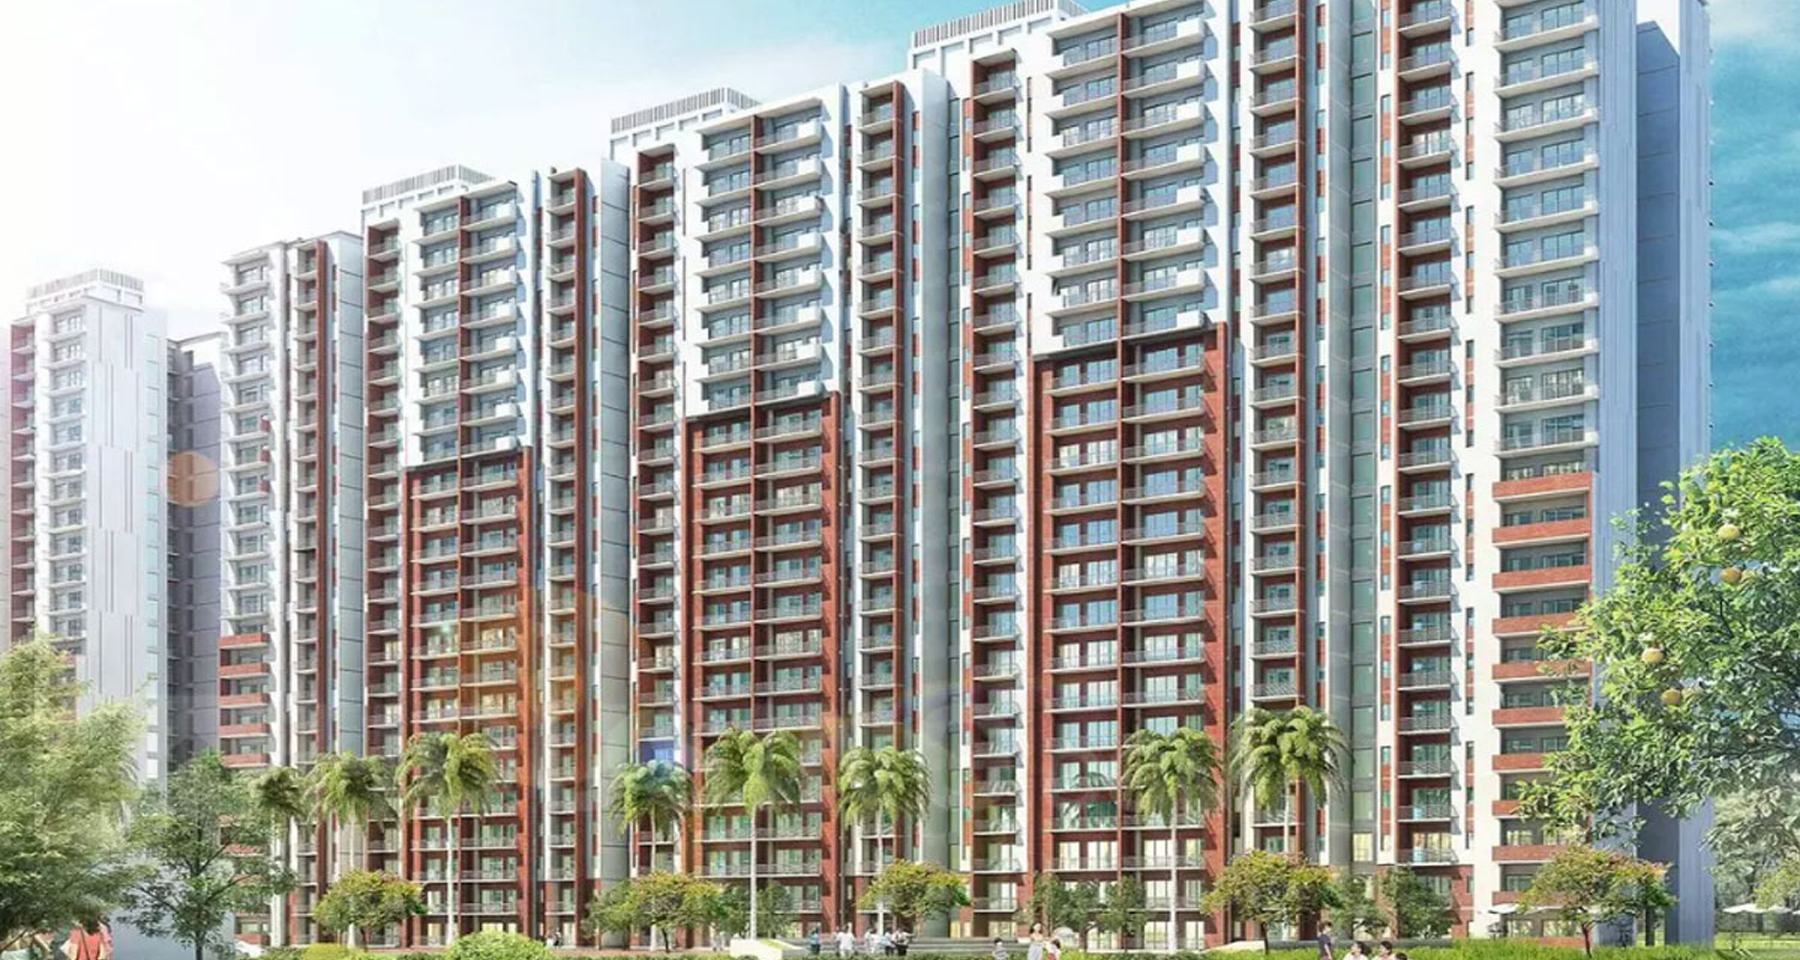 Tata Value Homes Eureka Park residential property, Sector-150